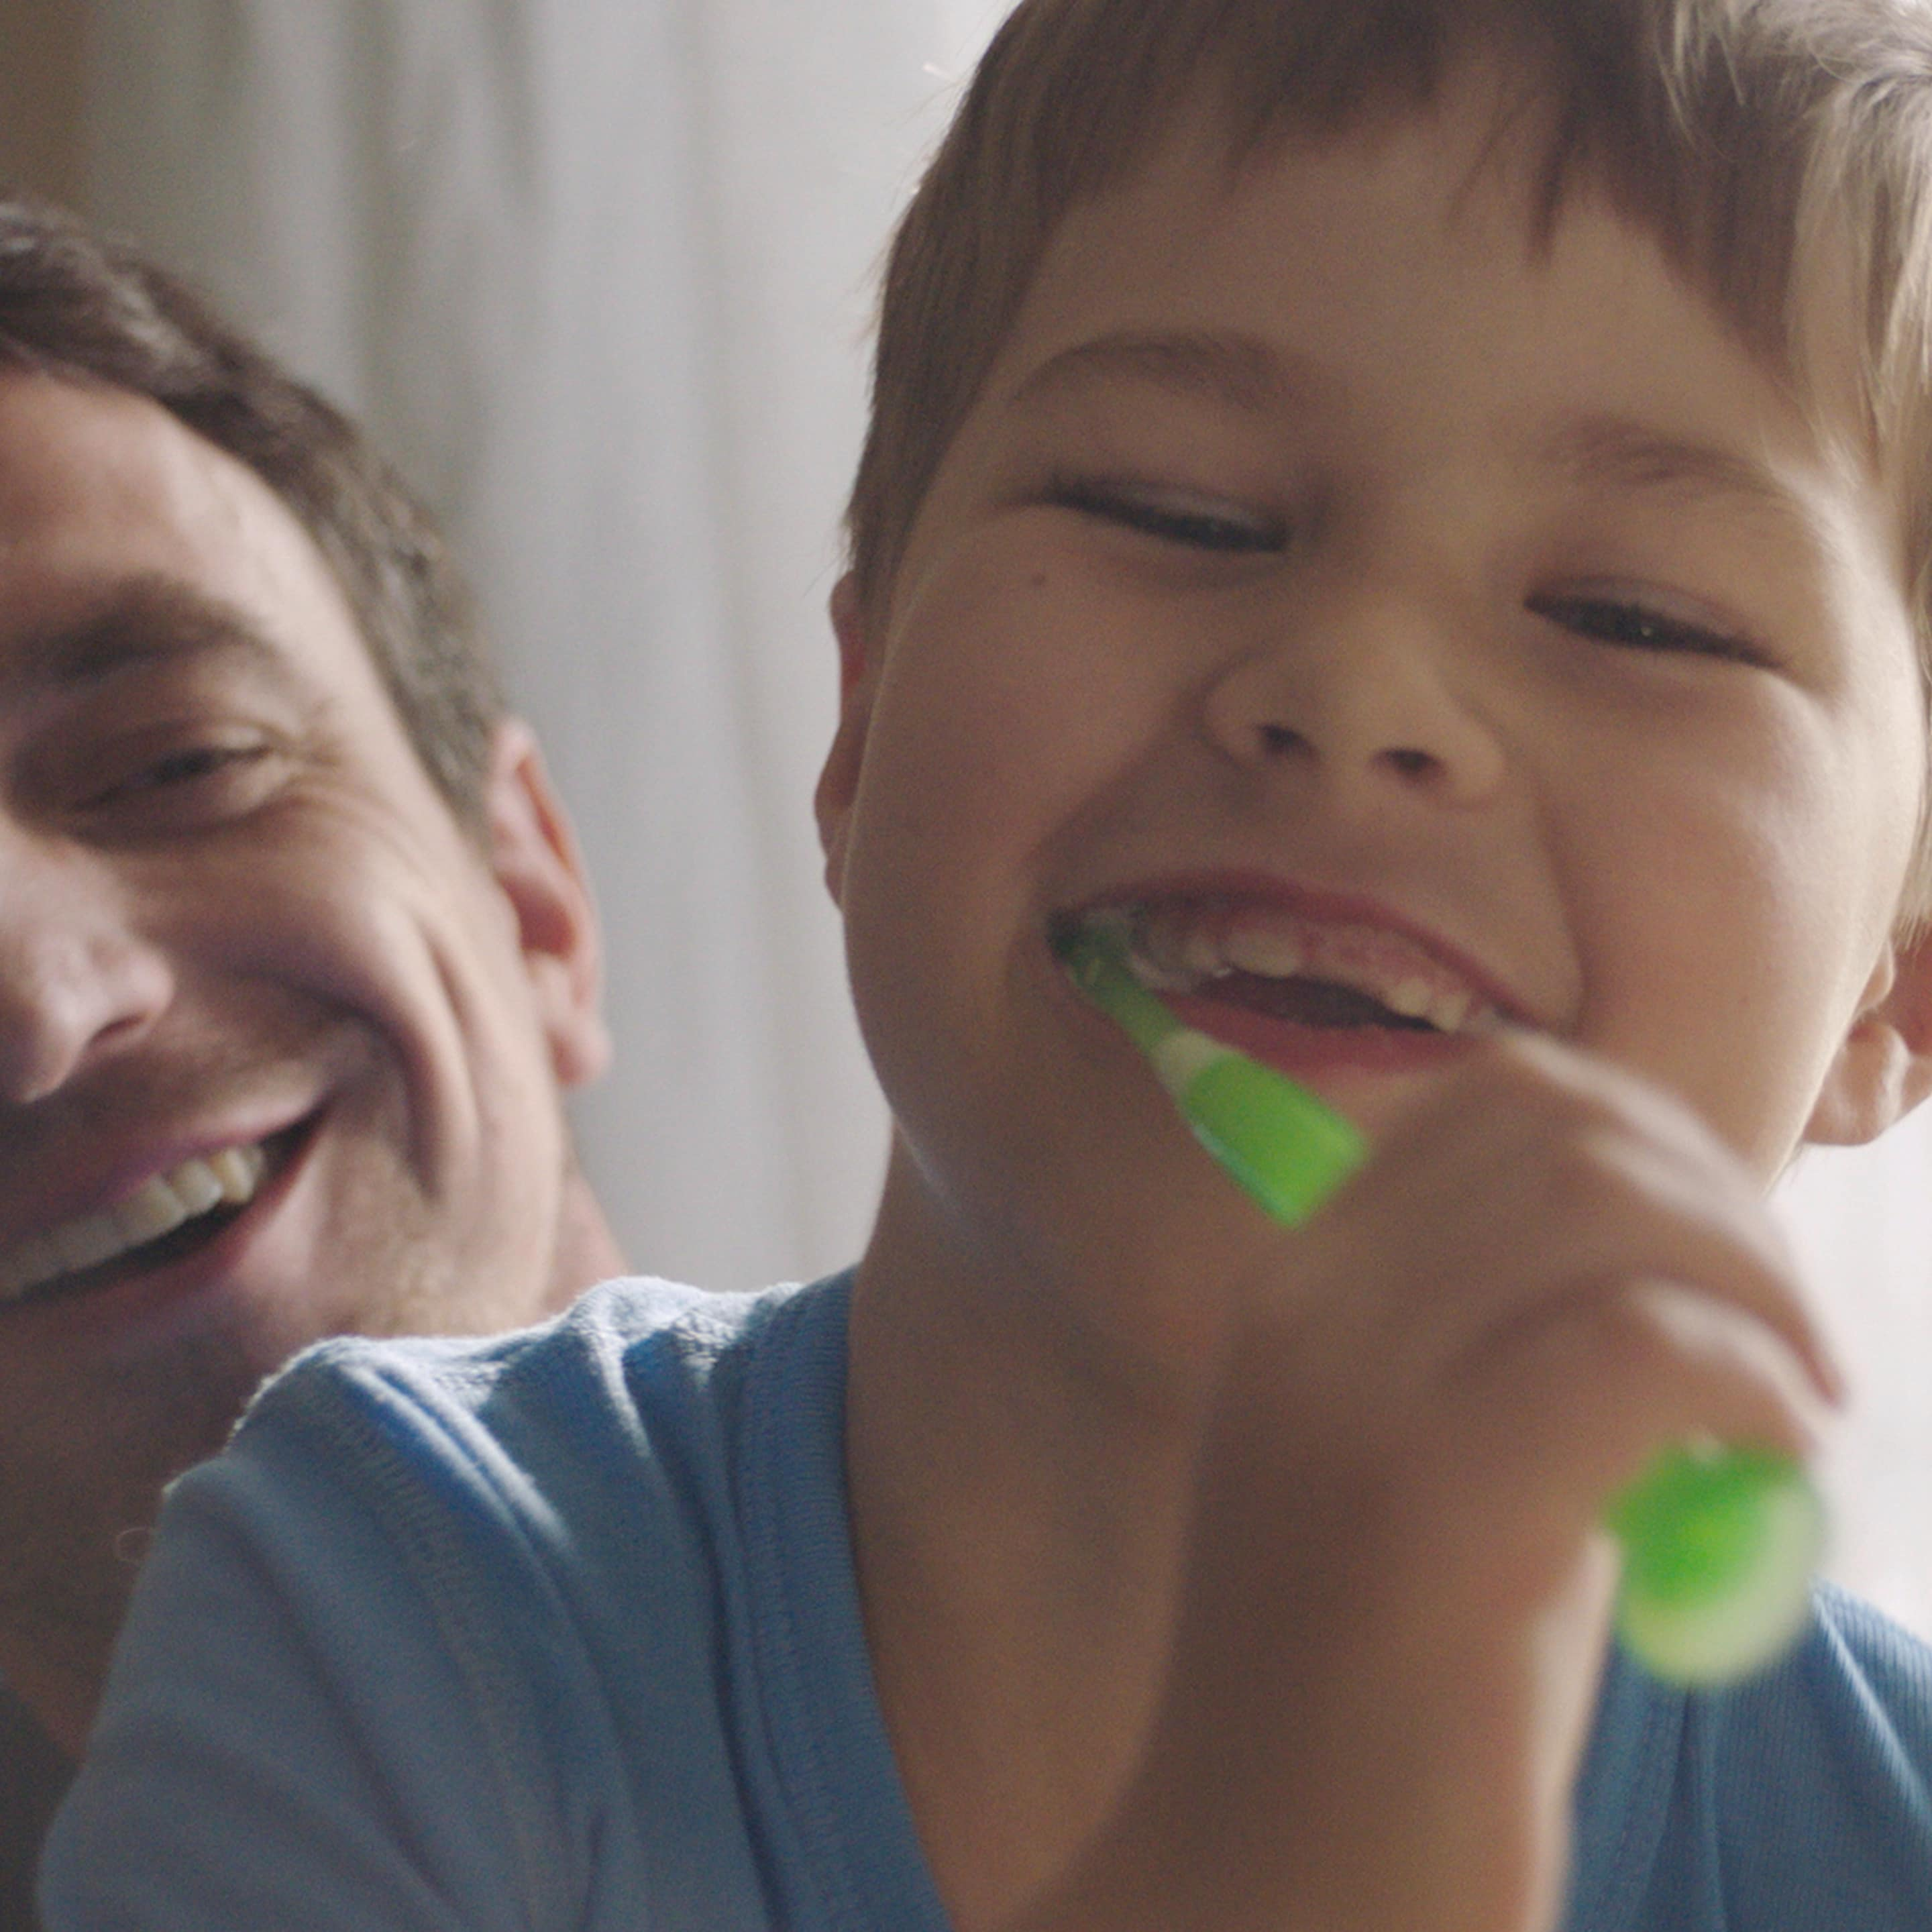 Smiling kid brushing his teeth with an electric toothbrush with his dad